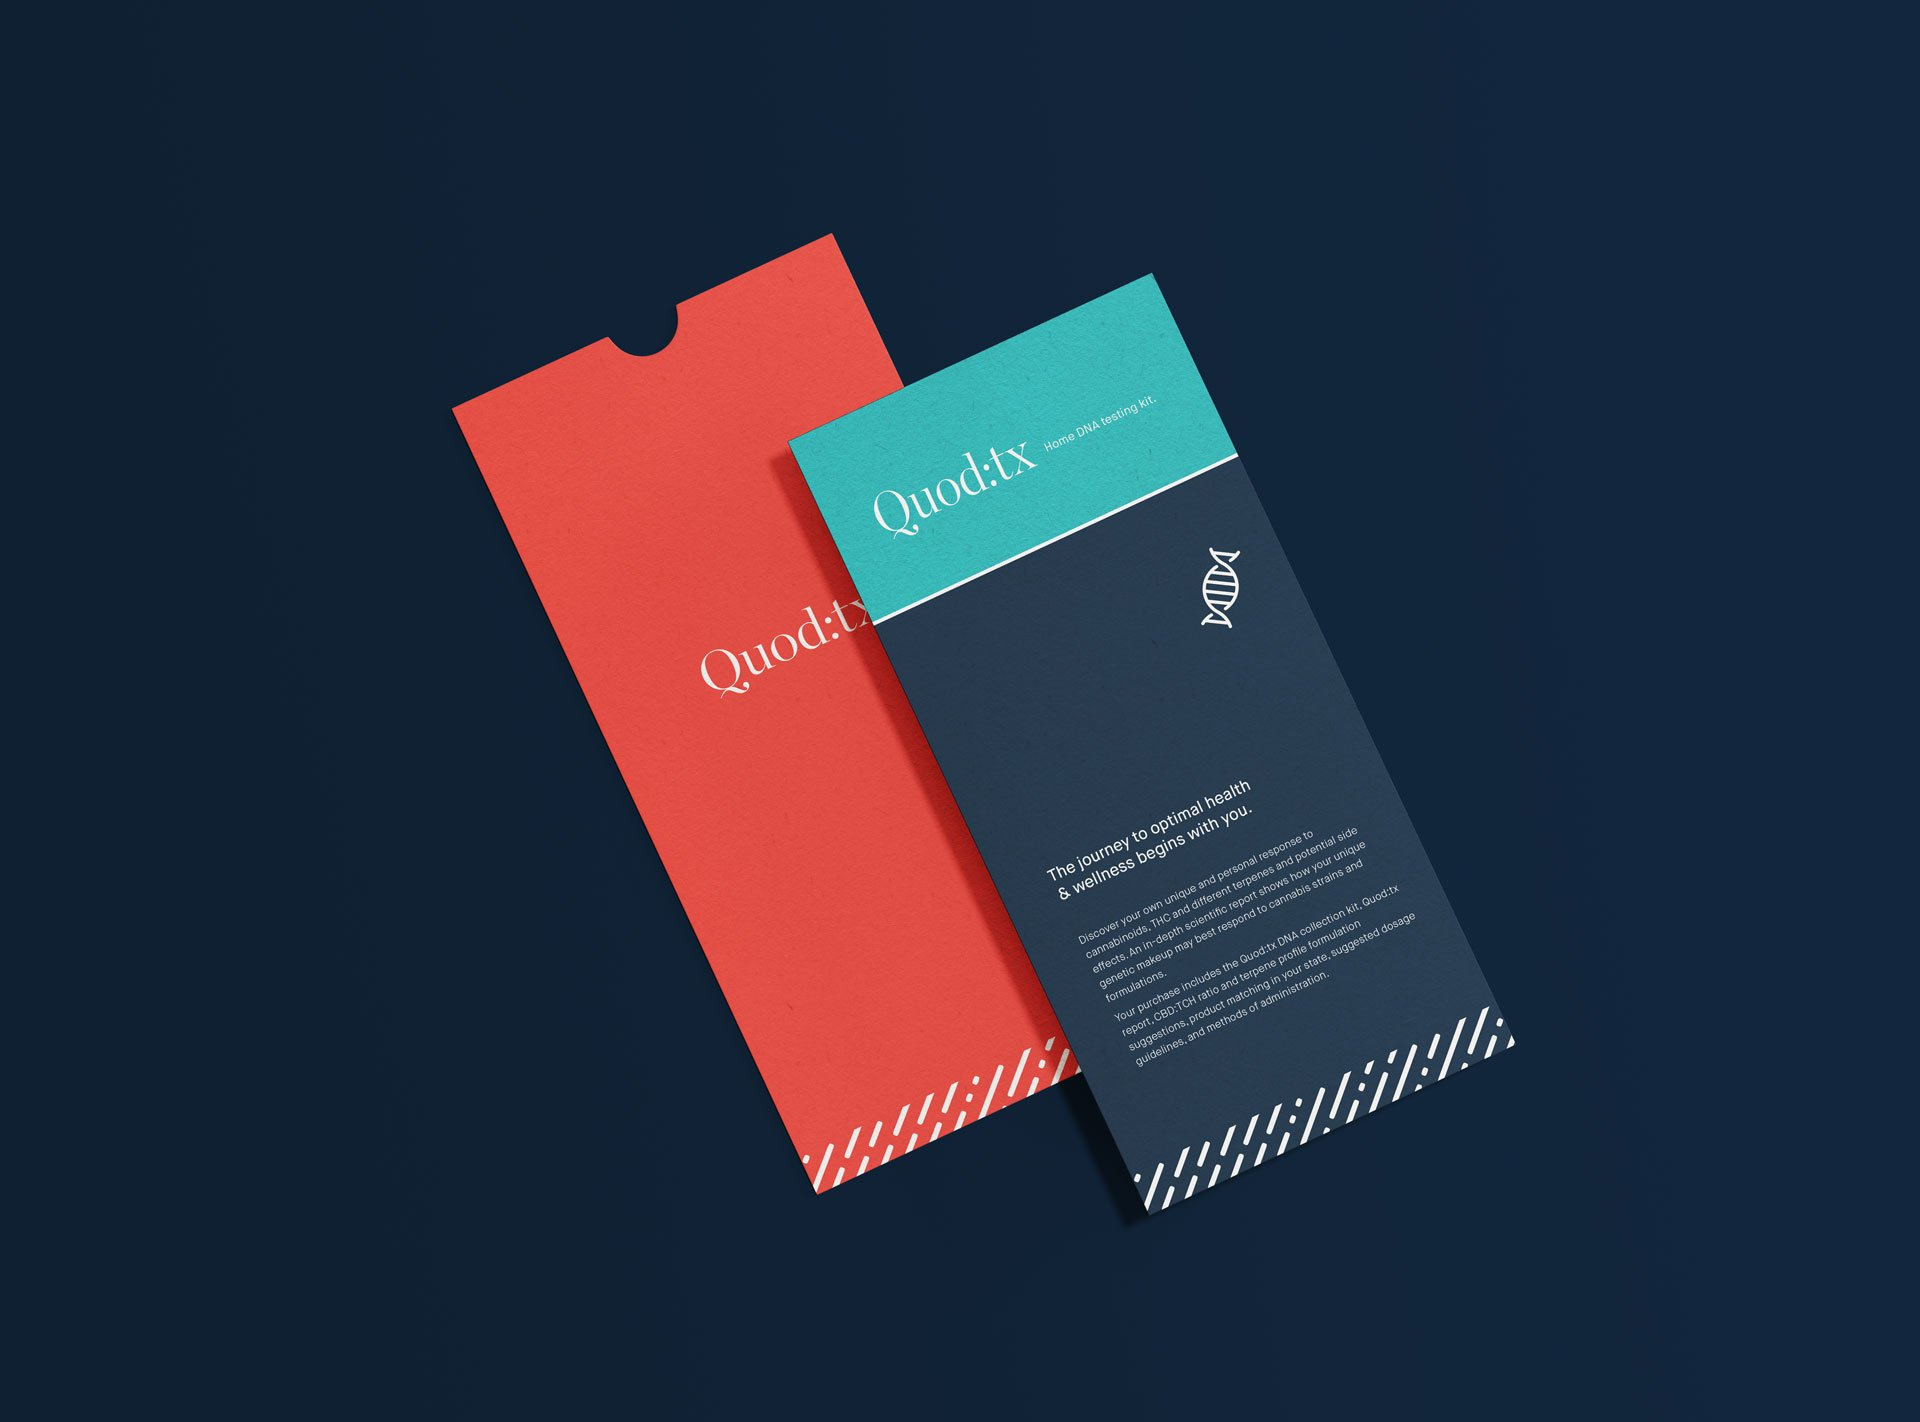 Quod:TX collateral material design